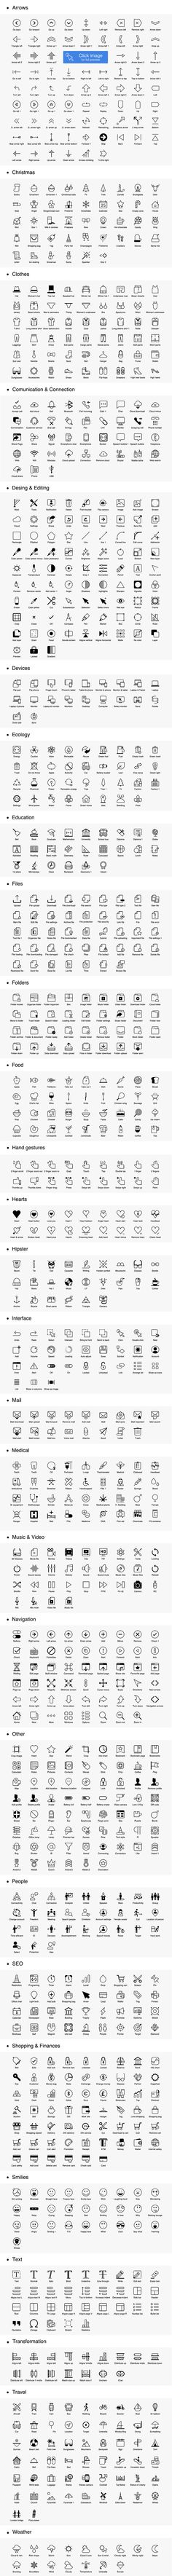 1042 iOS style line icons by Robert.F on Creative Market